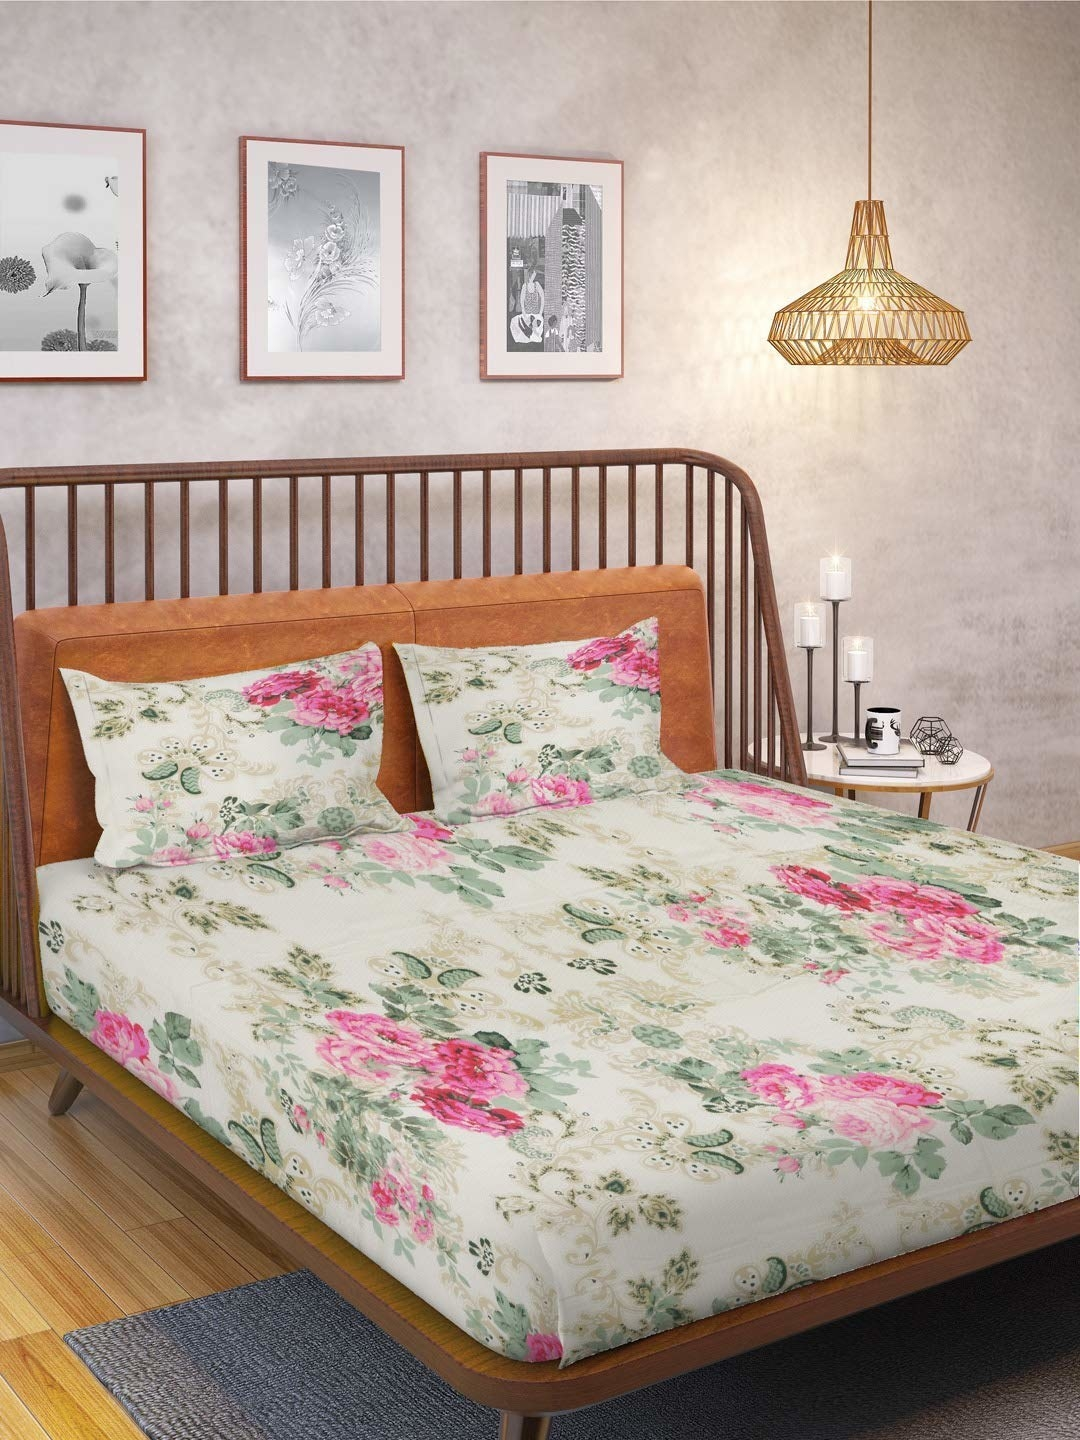 A floral white bedsheet